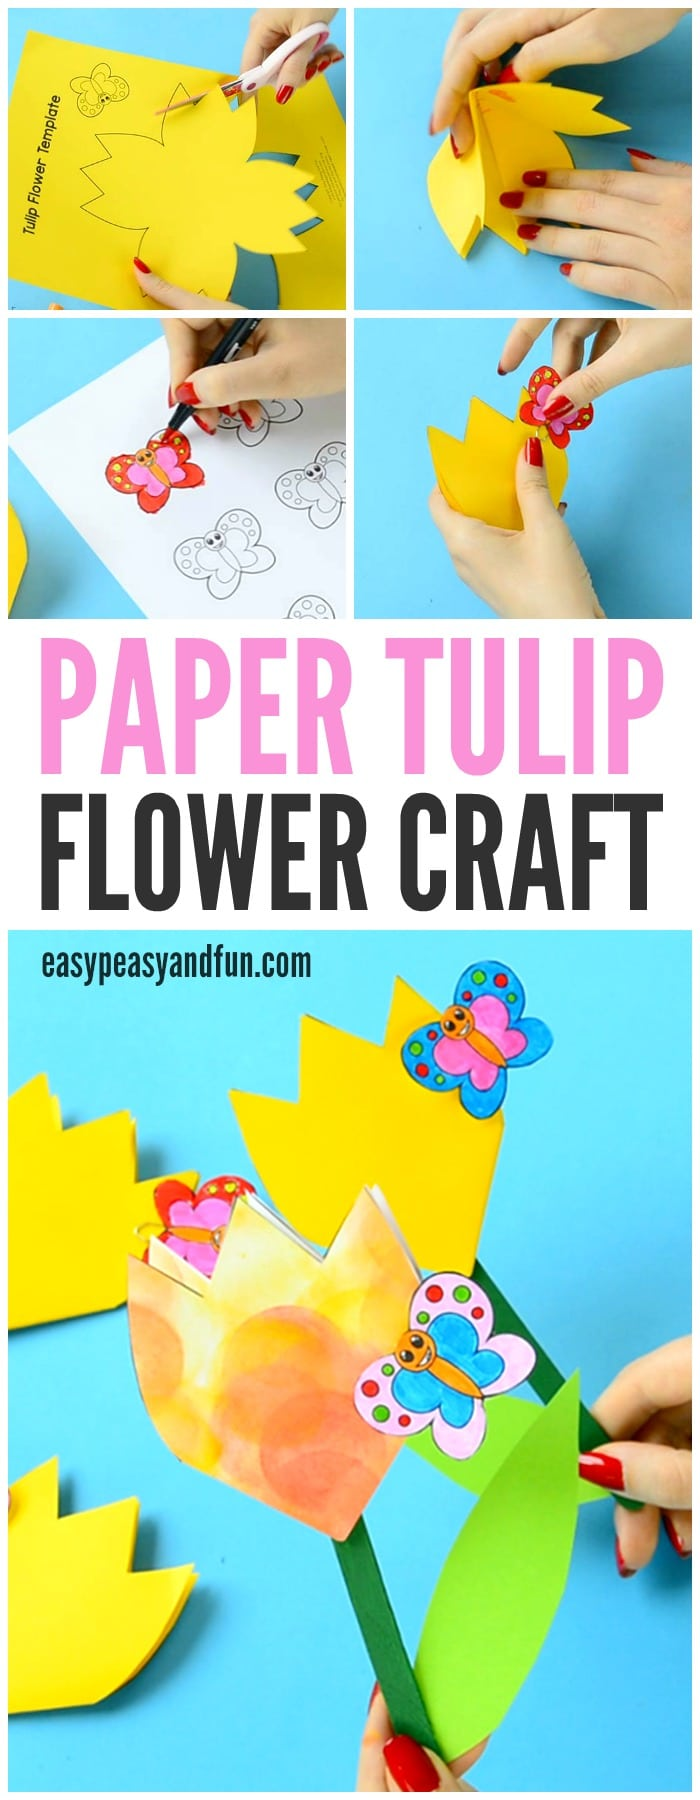 paper tulip flower craft with printable template easy peasy and fun